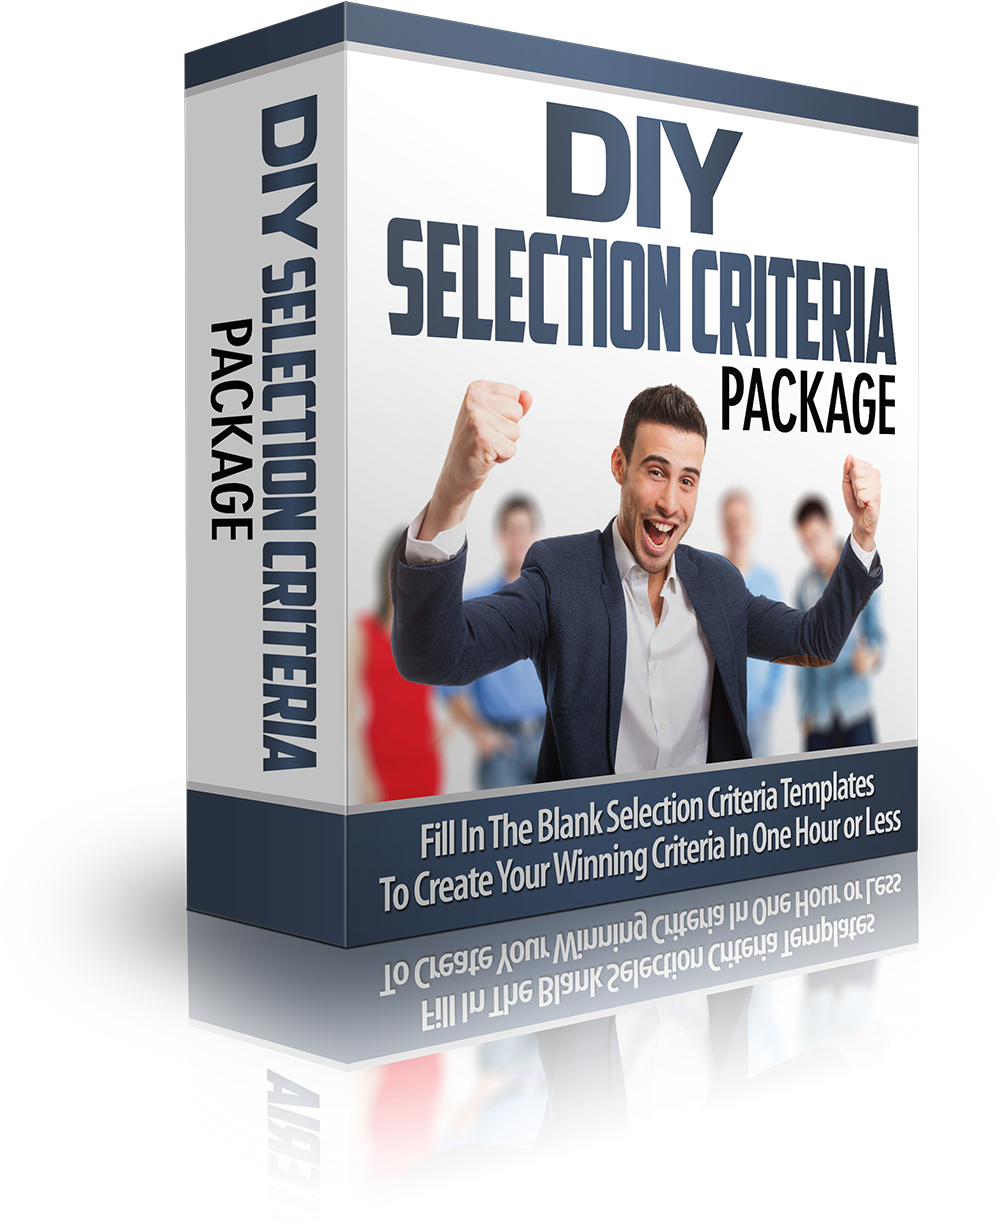 DIY Selection Criteria Package